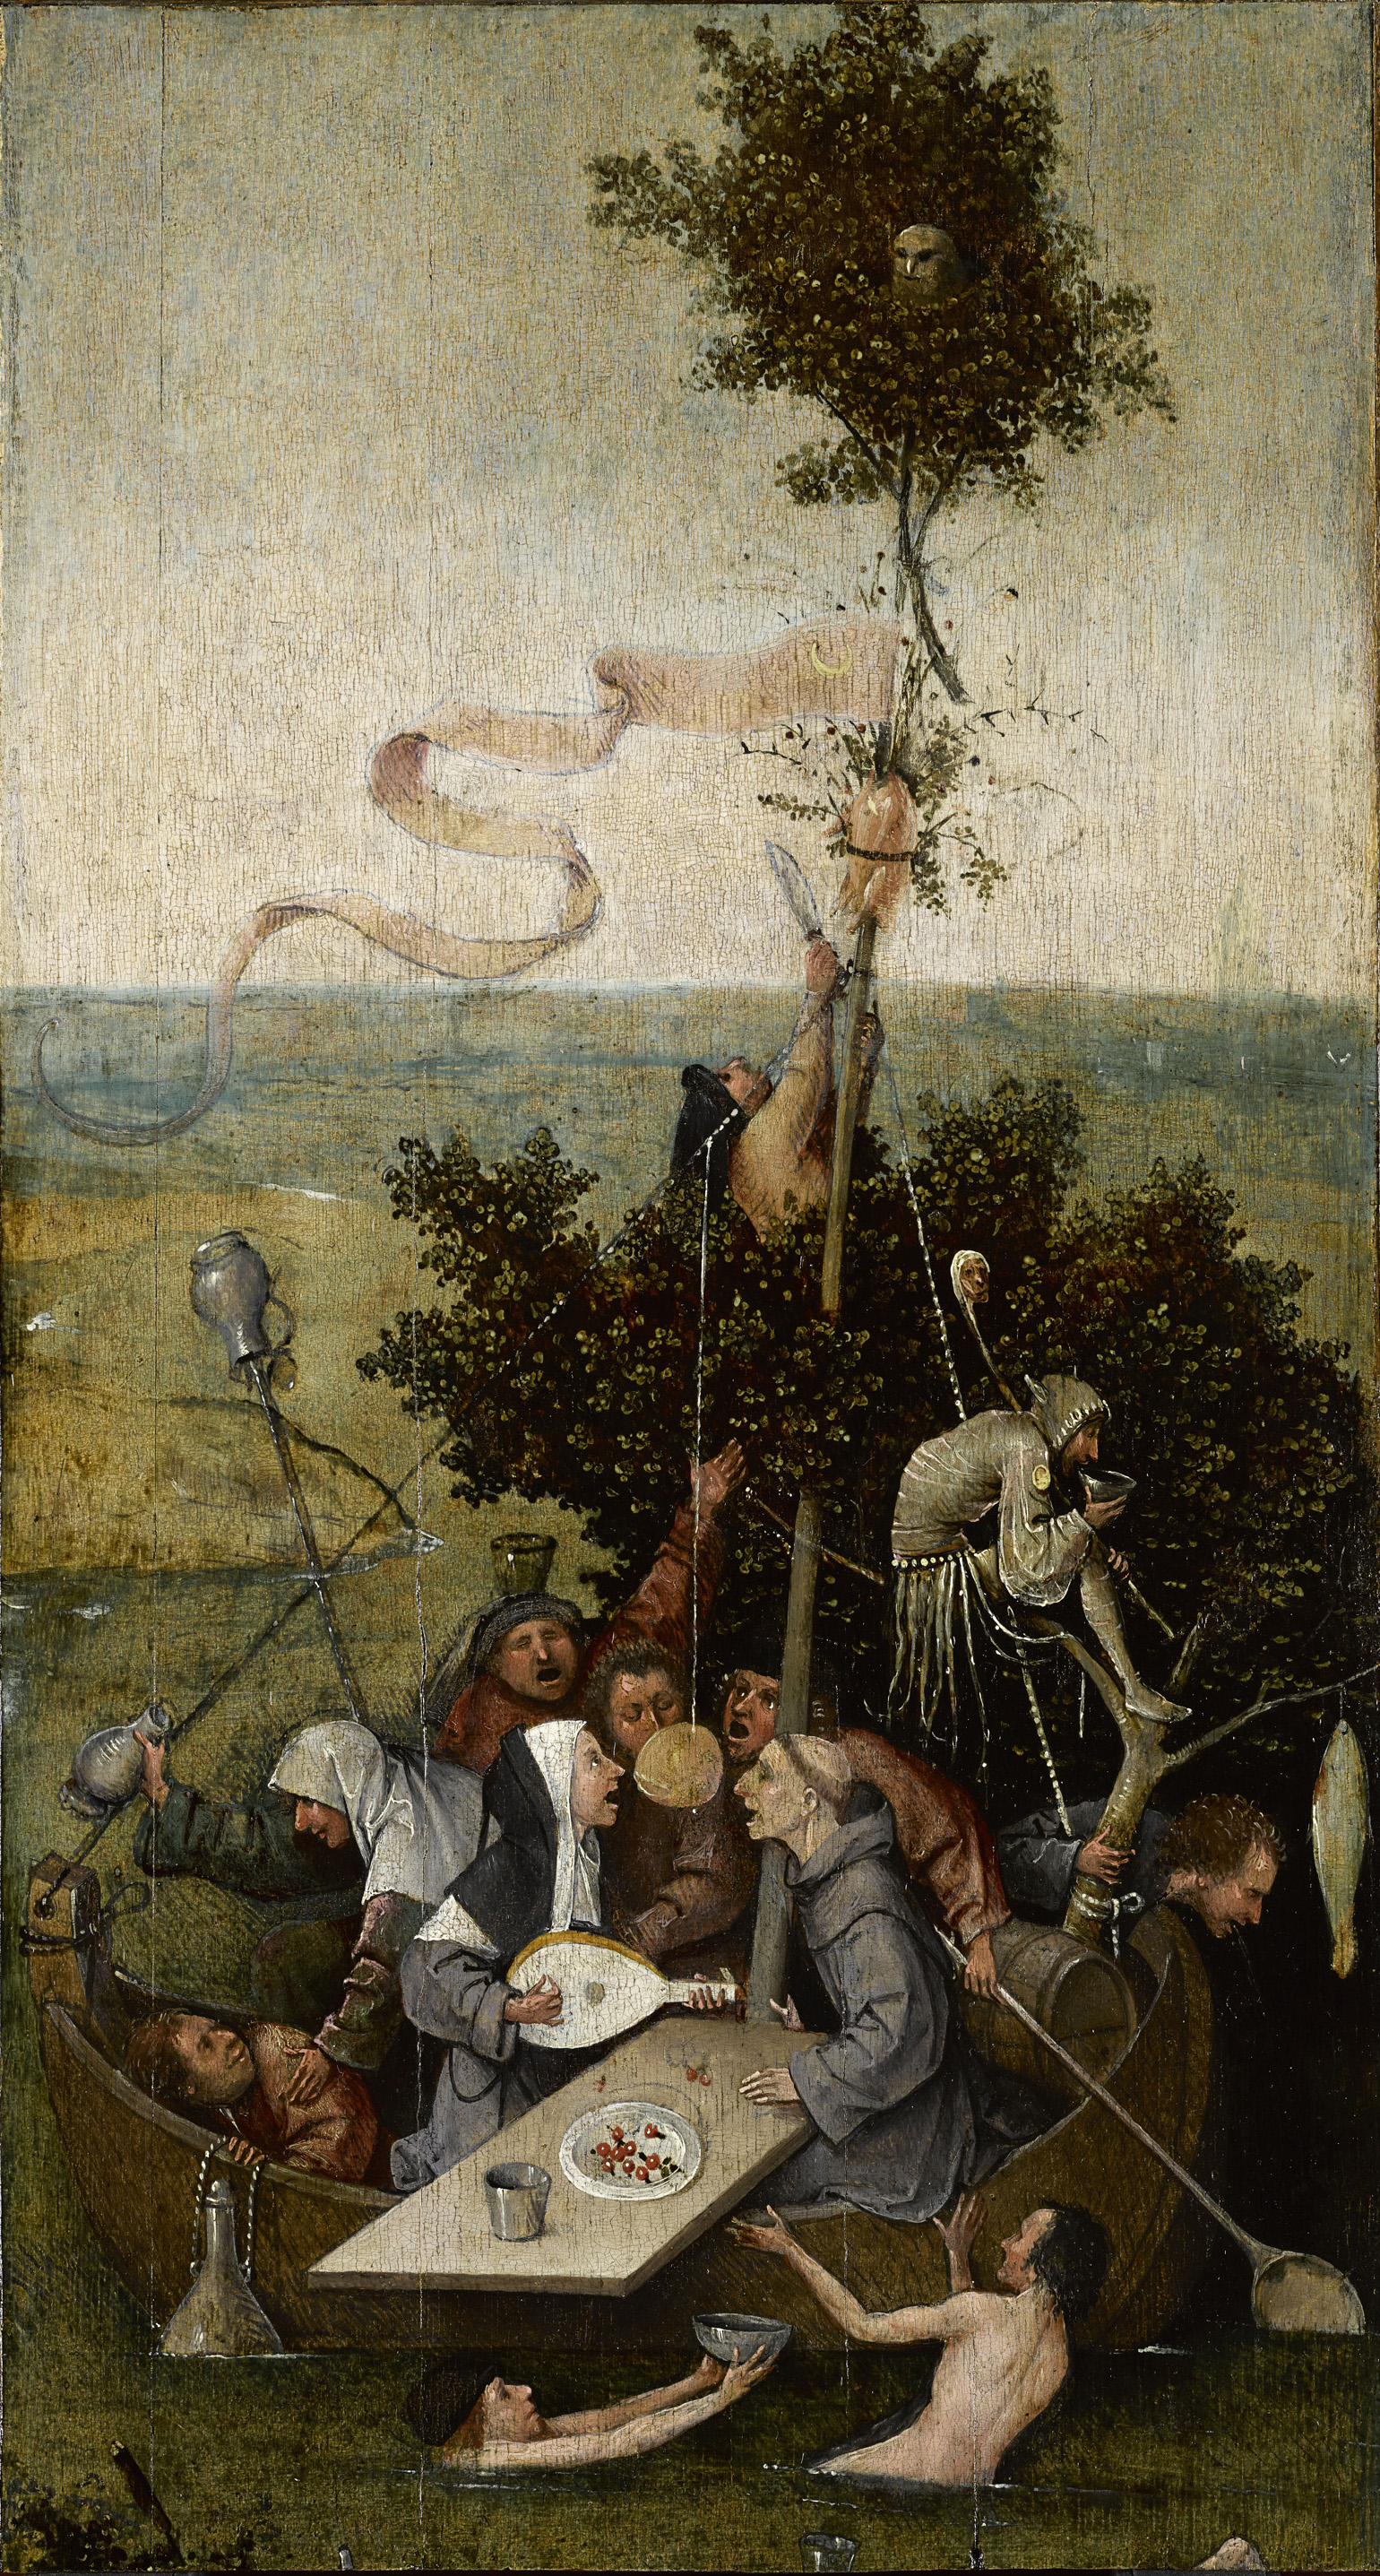 https://i1.wp.com/upload.wikimedia.org/wikipedia/commons/a/a2/Jheronimus_Bosch_011.jpg